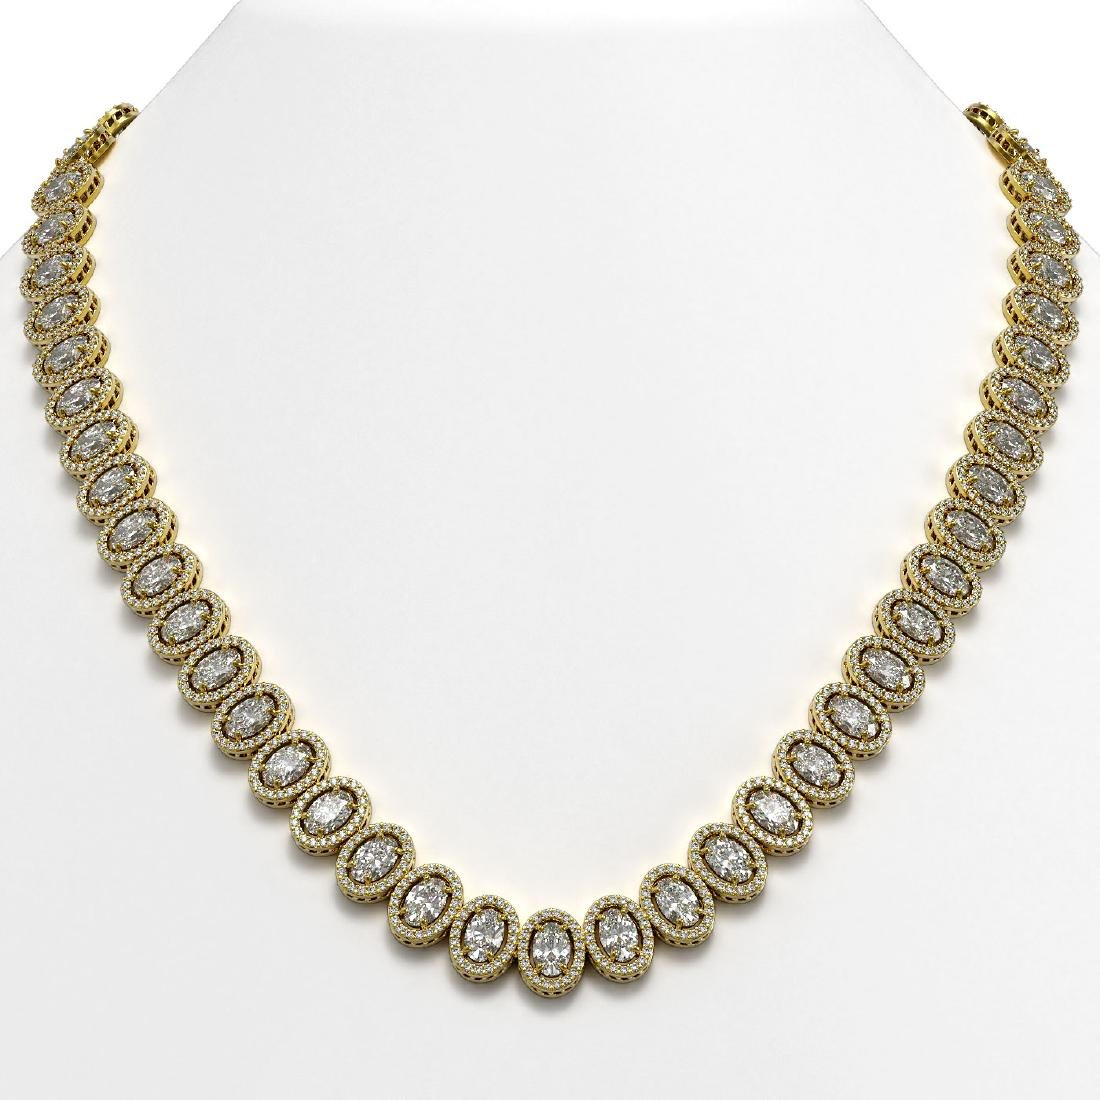 42.56 CTW Oval Diamond Designer Necklace 18K Yellow